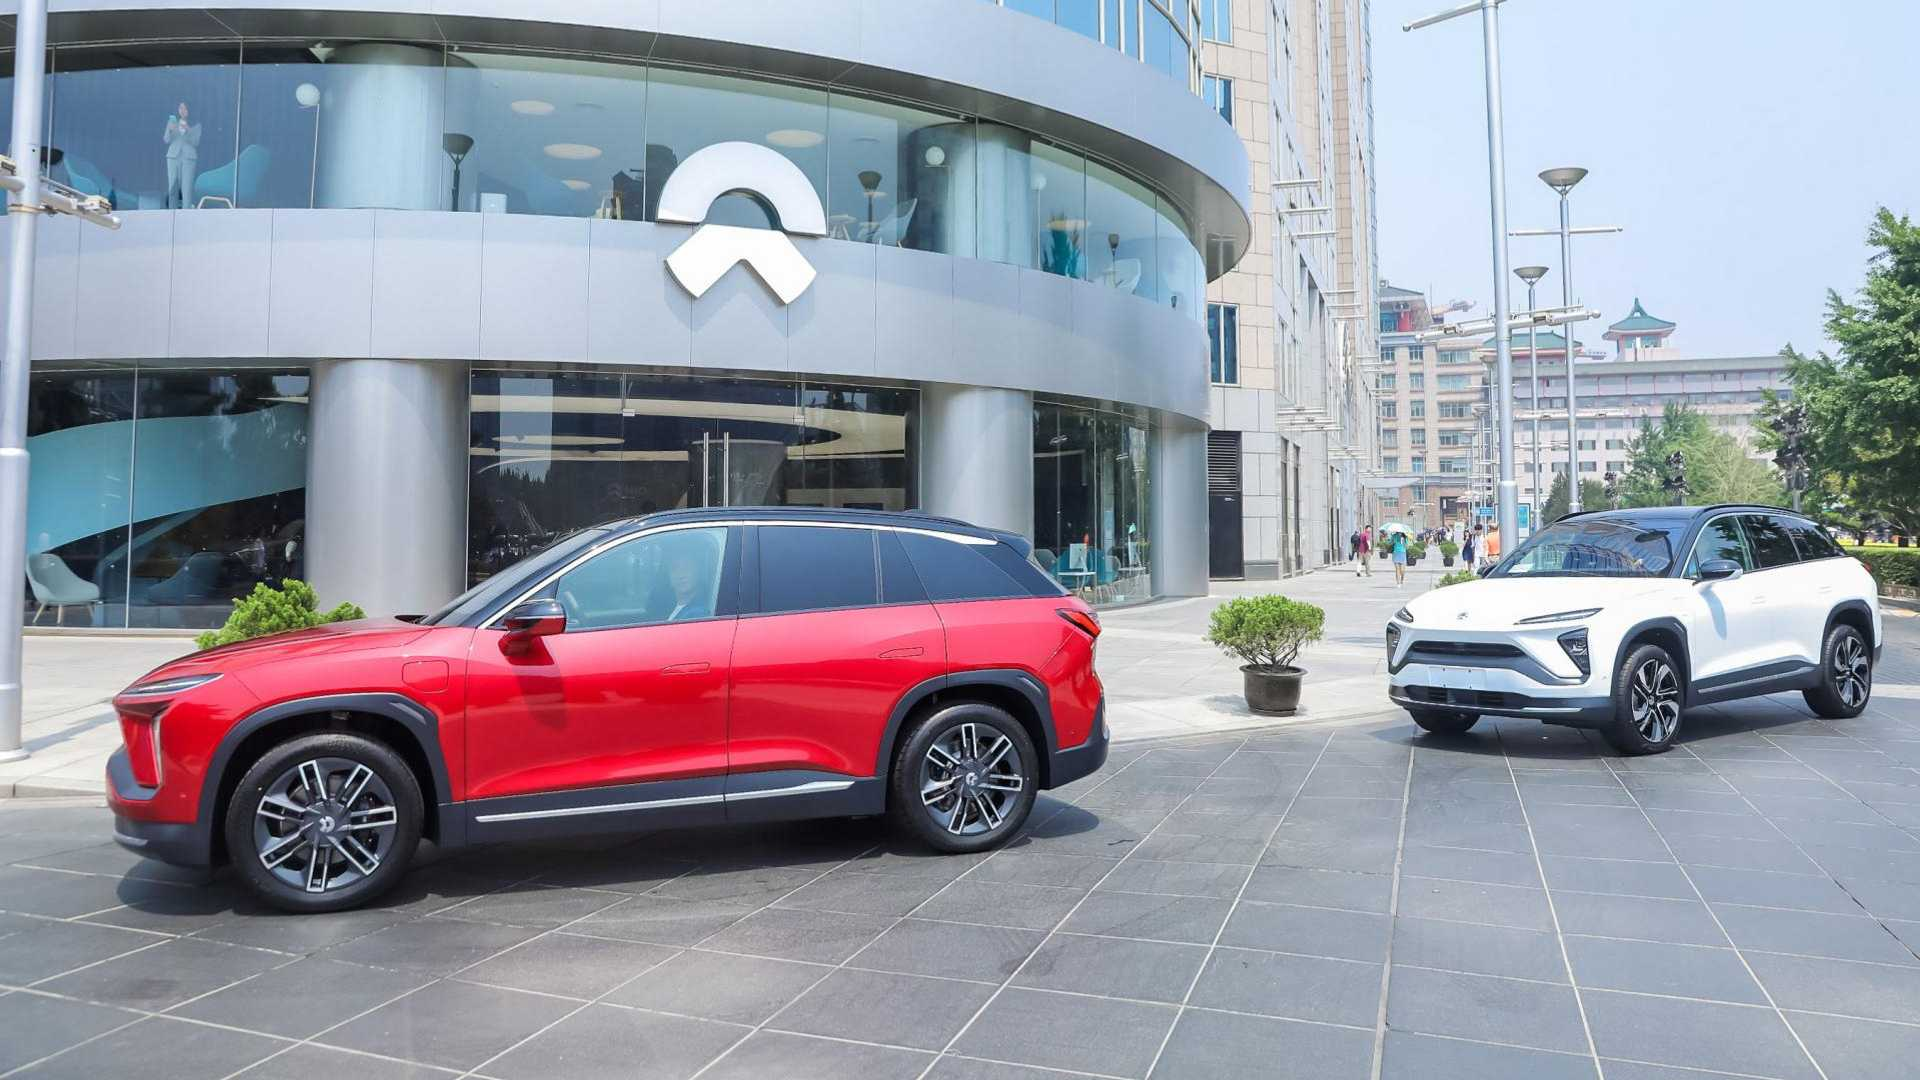 Nio Set New Monthly Sales Record Of Nearly 4 000 In August 2020